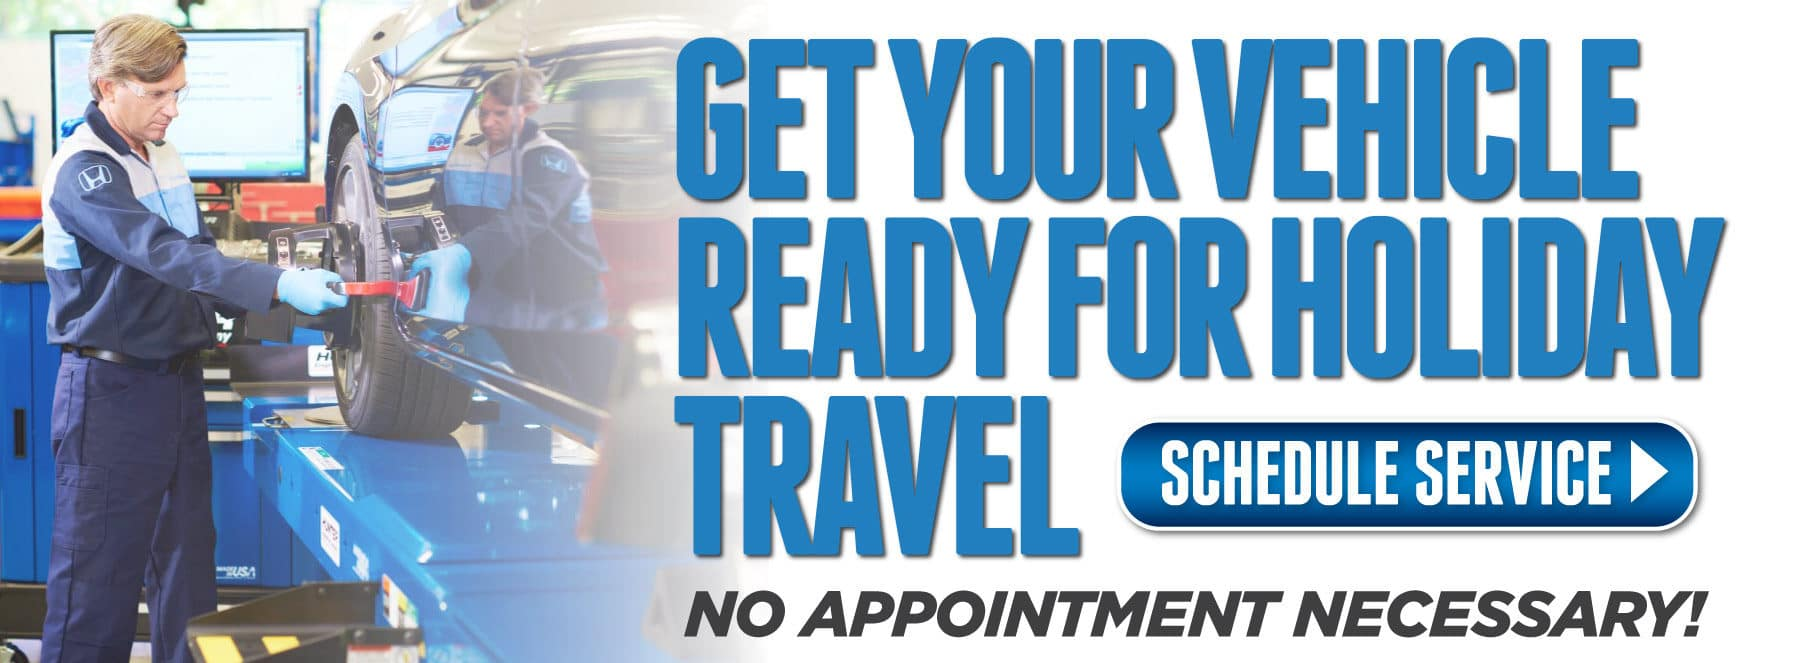 Get your vehicle ready for Holiday travel - Schedule Service